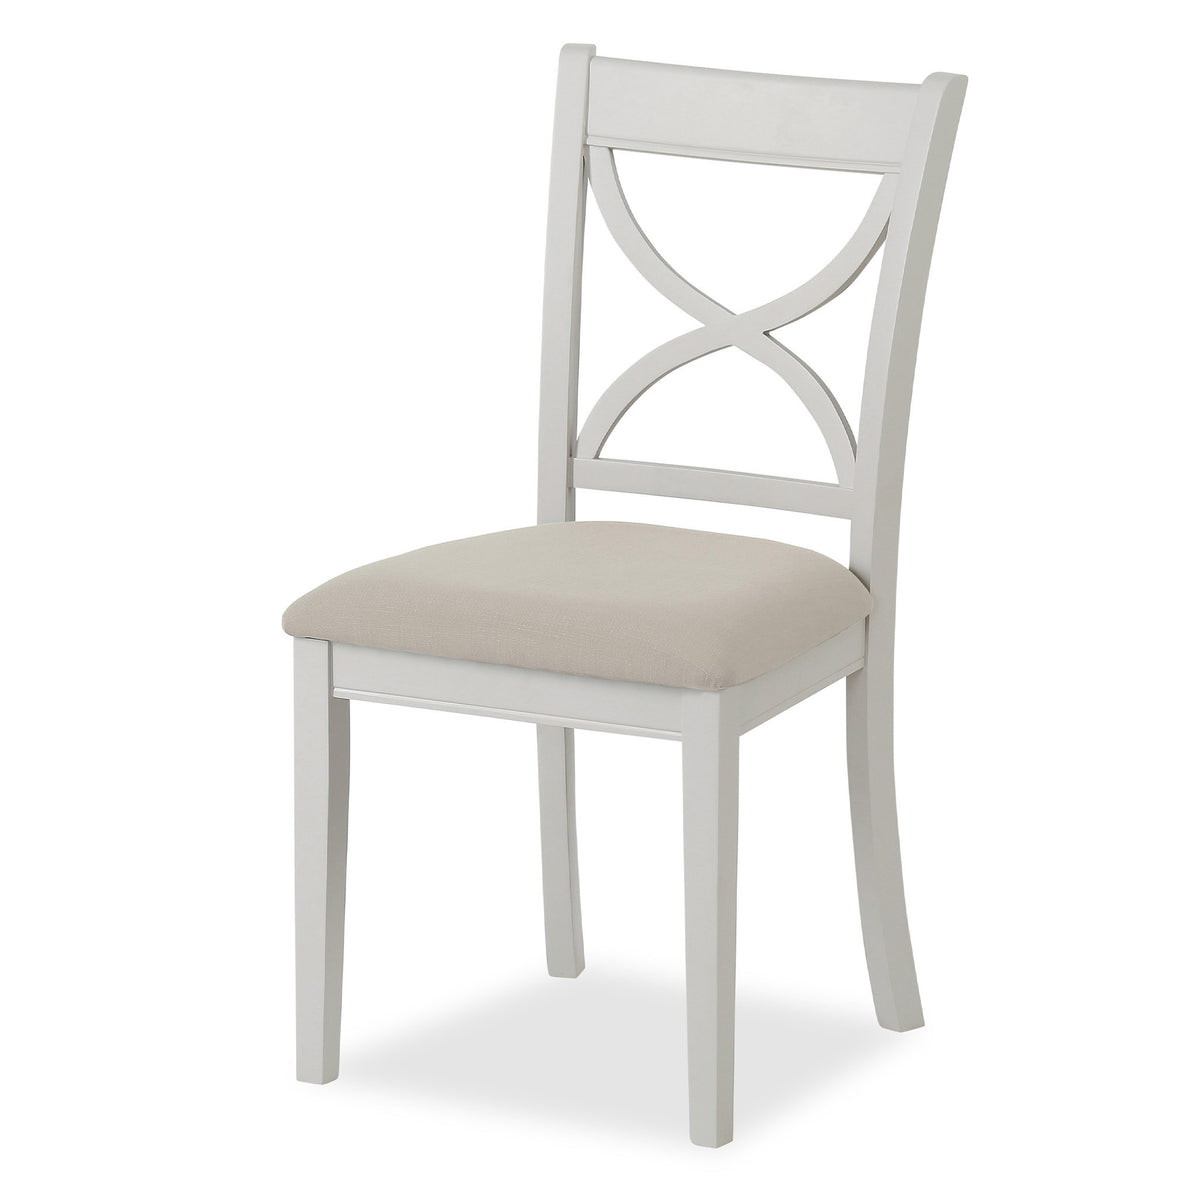 Melrose Grey Dining Chair with fabric seat from Roseland Furniture